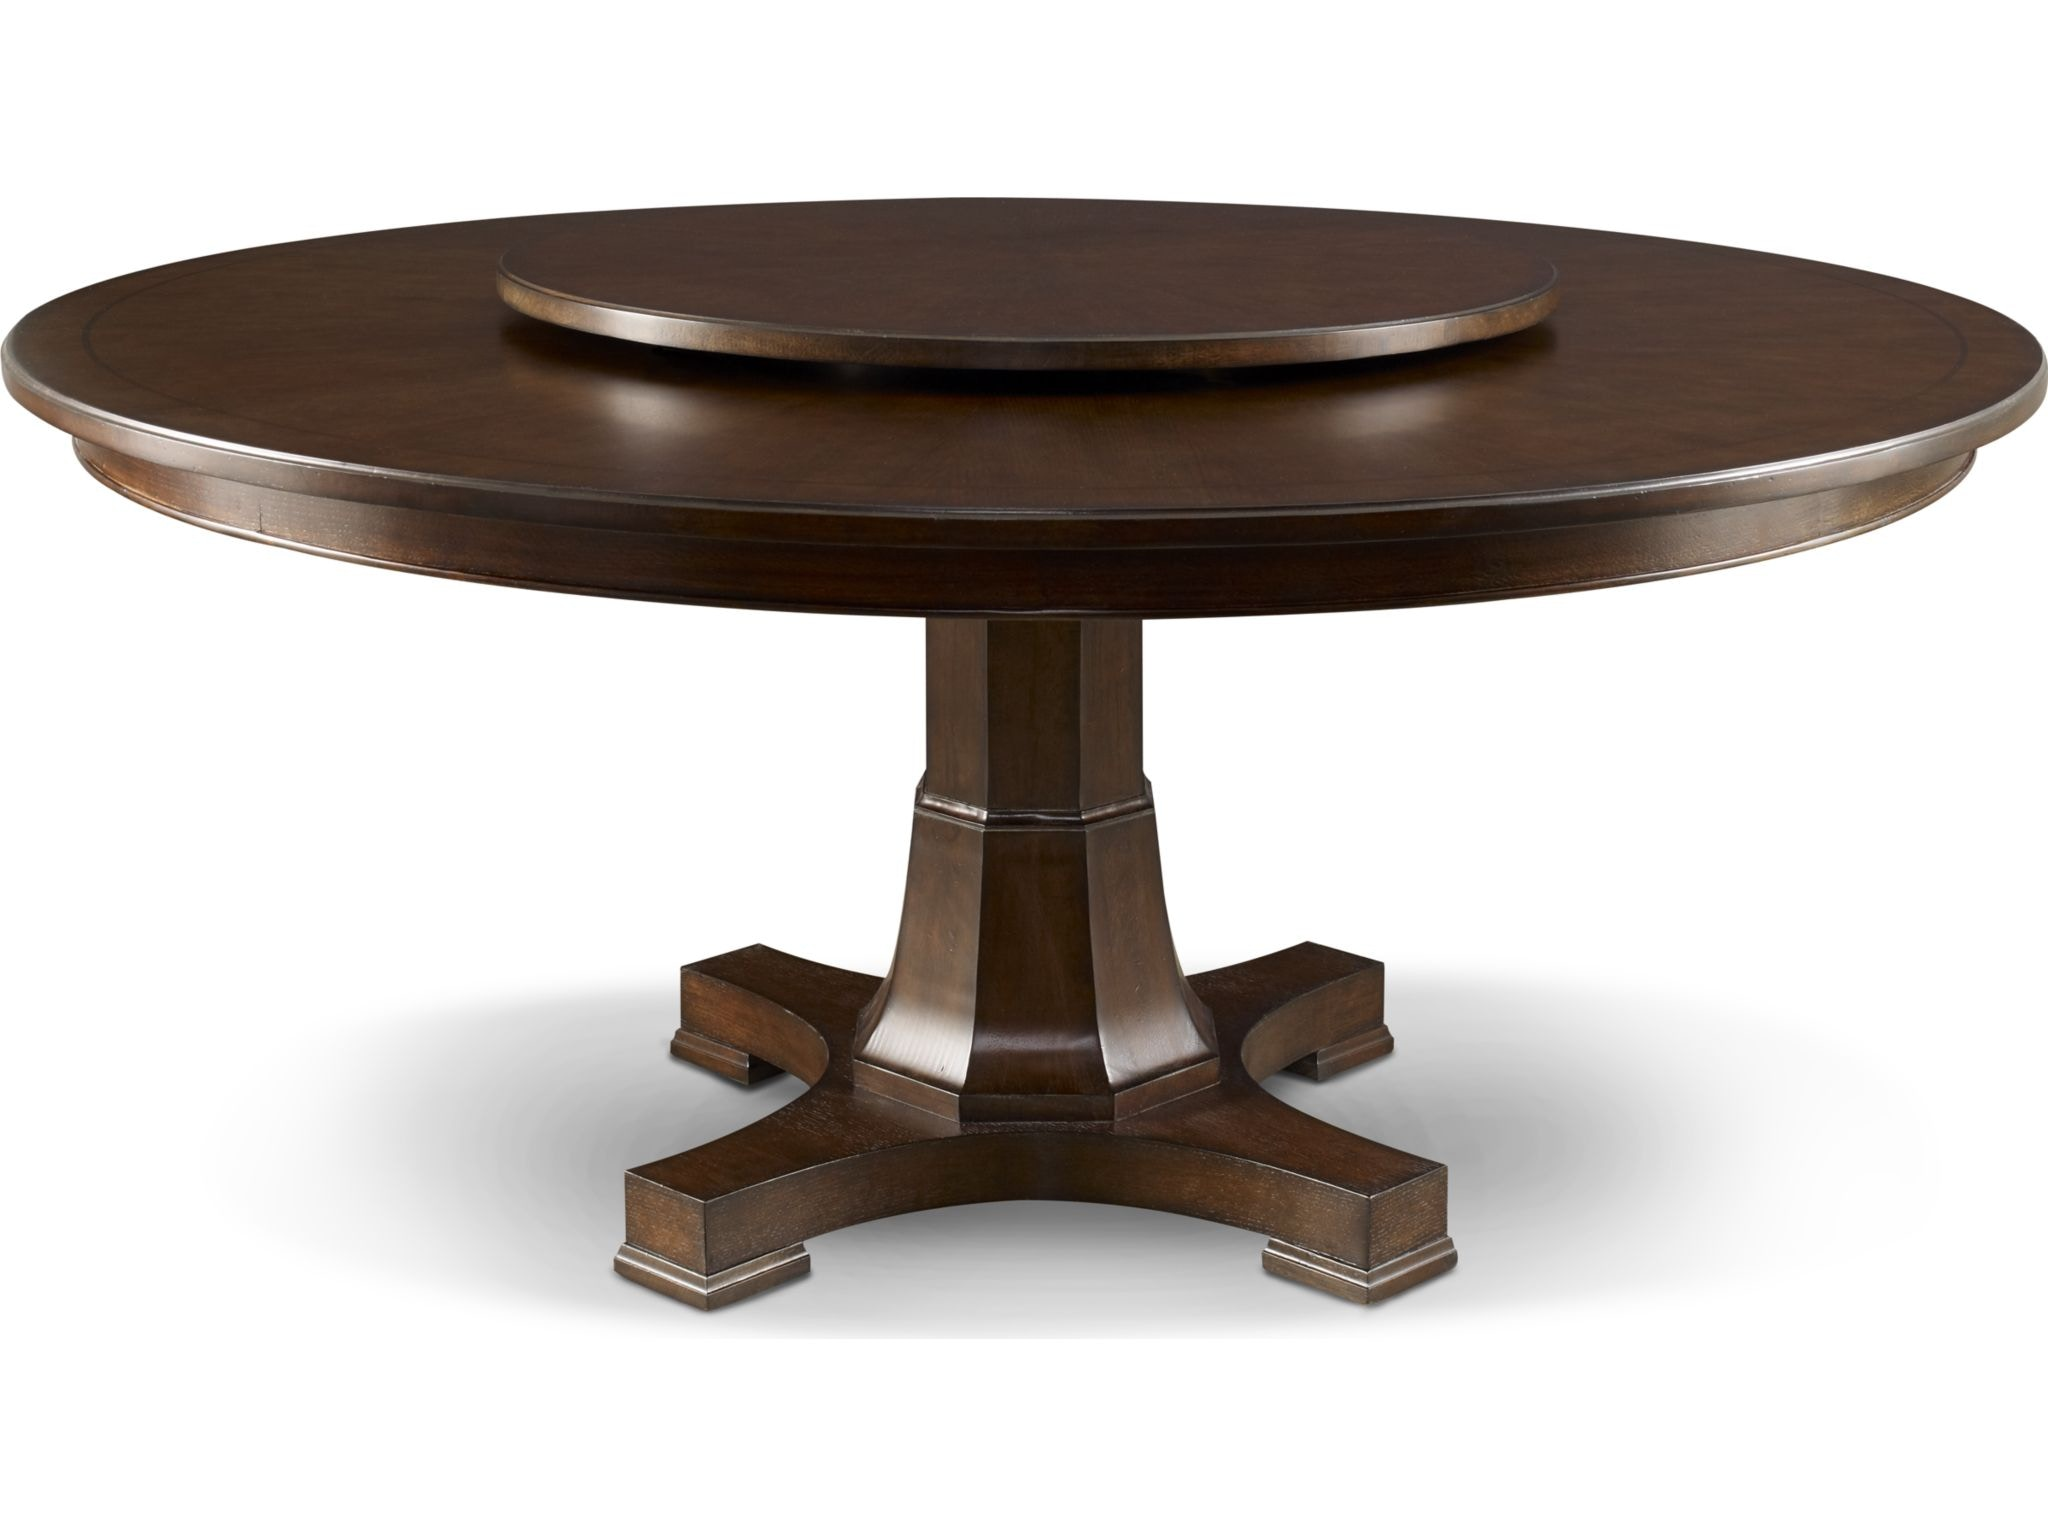 Thomasville Adelaide Round Dining Table 83422 730